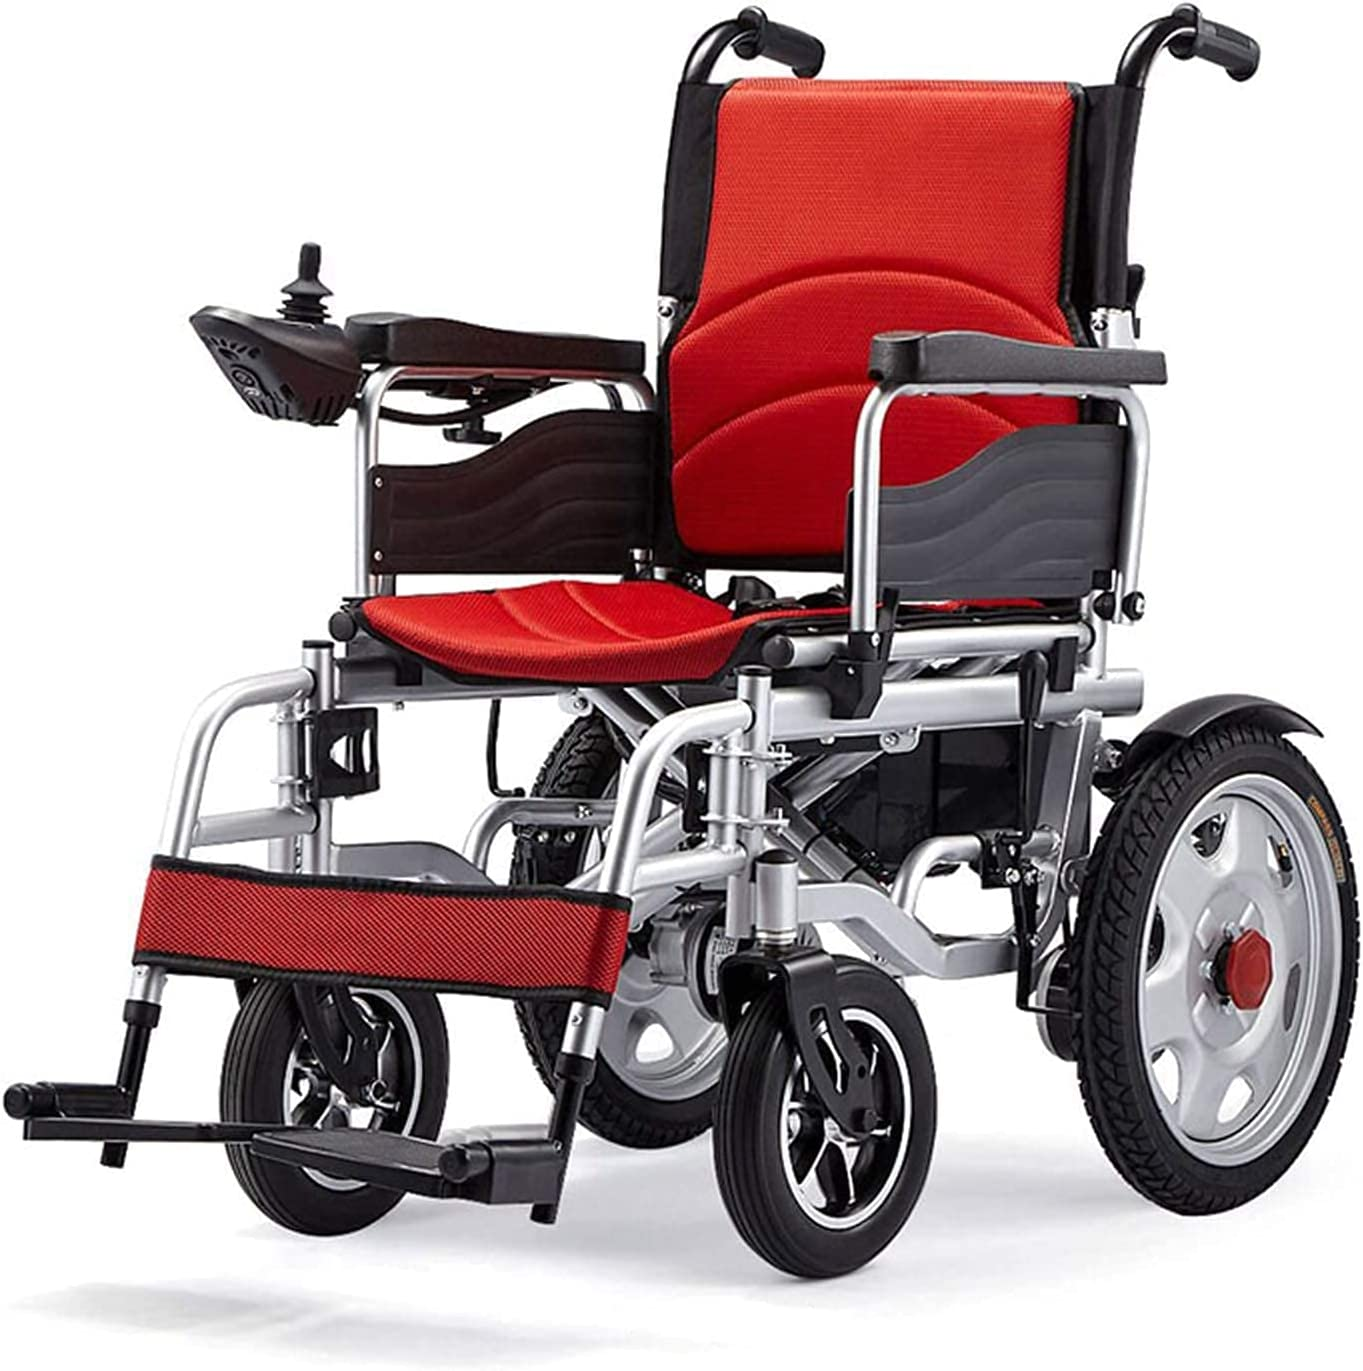 Electric Wheelchairs Scooters for The W Charlotte Mall and Elderly sold out Disabled